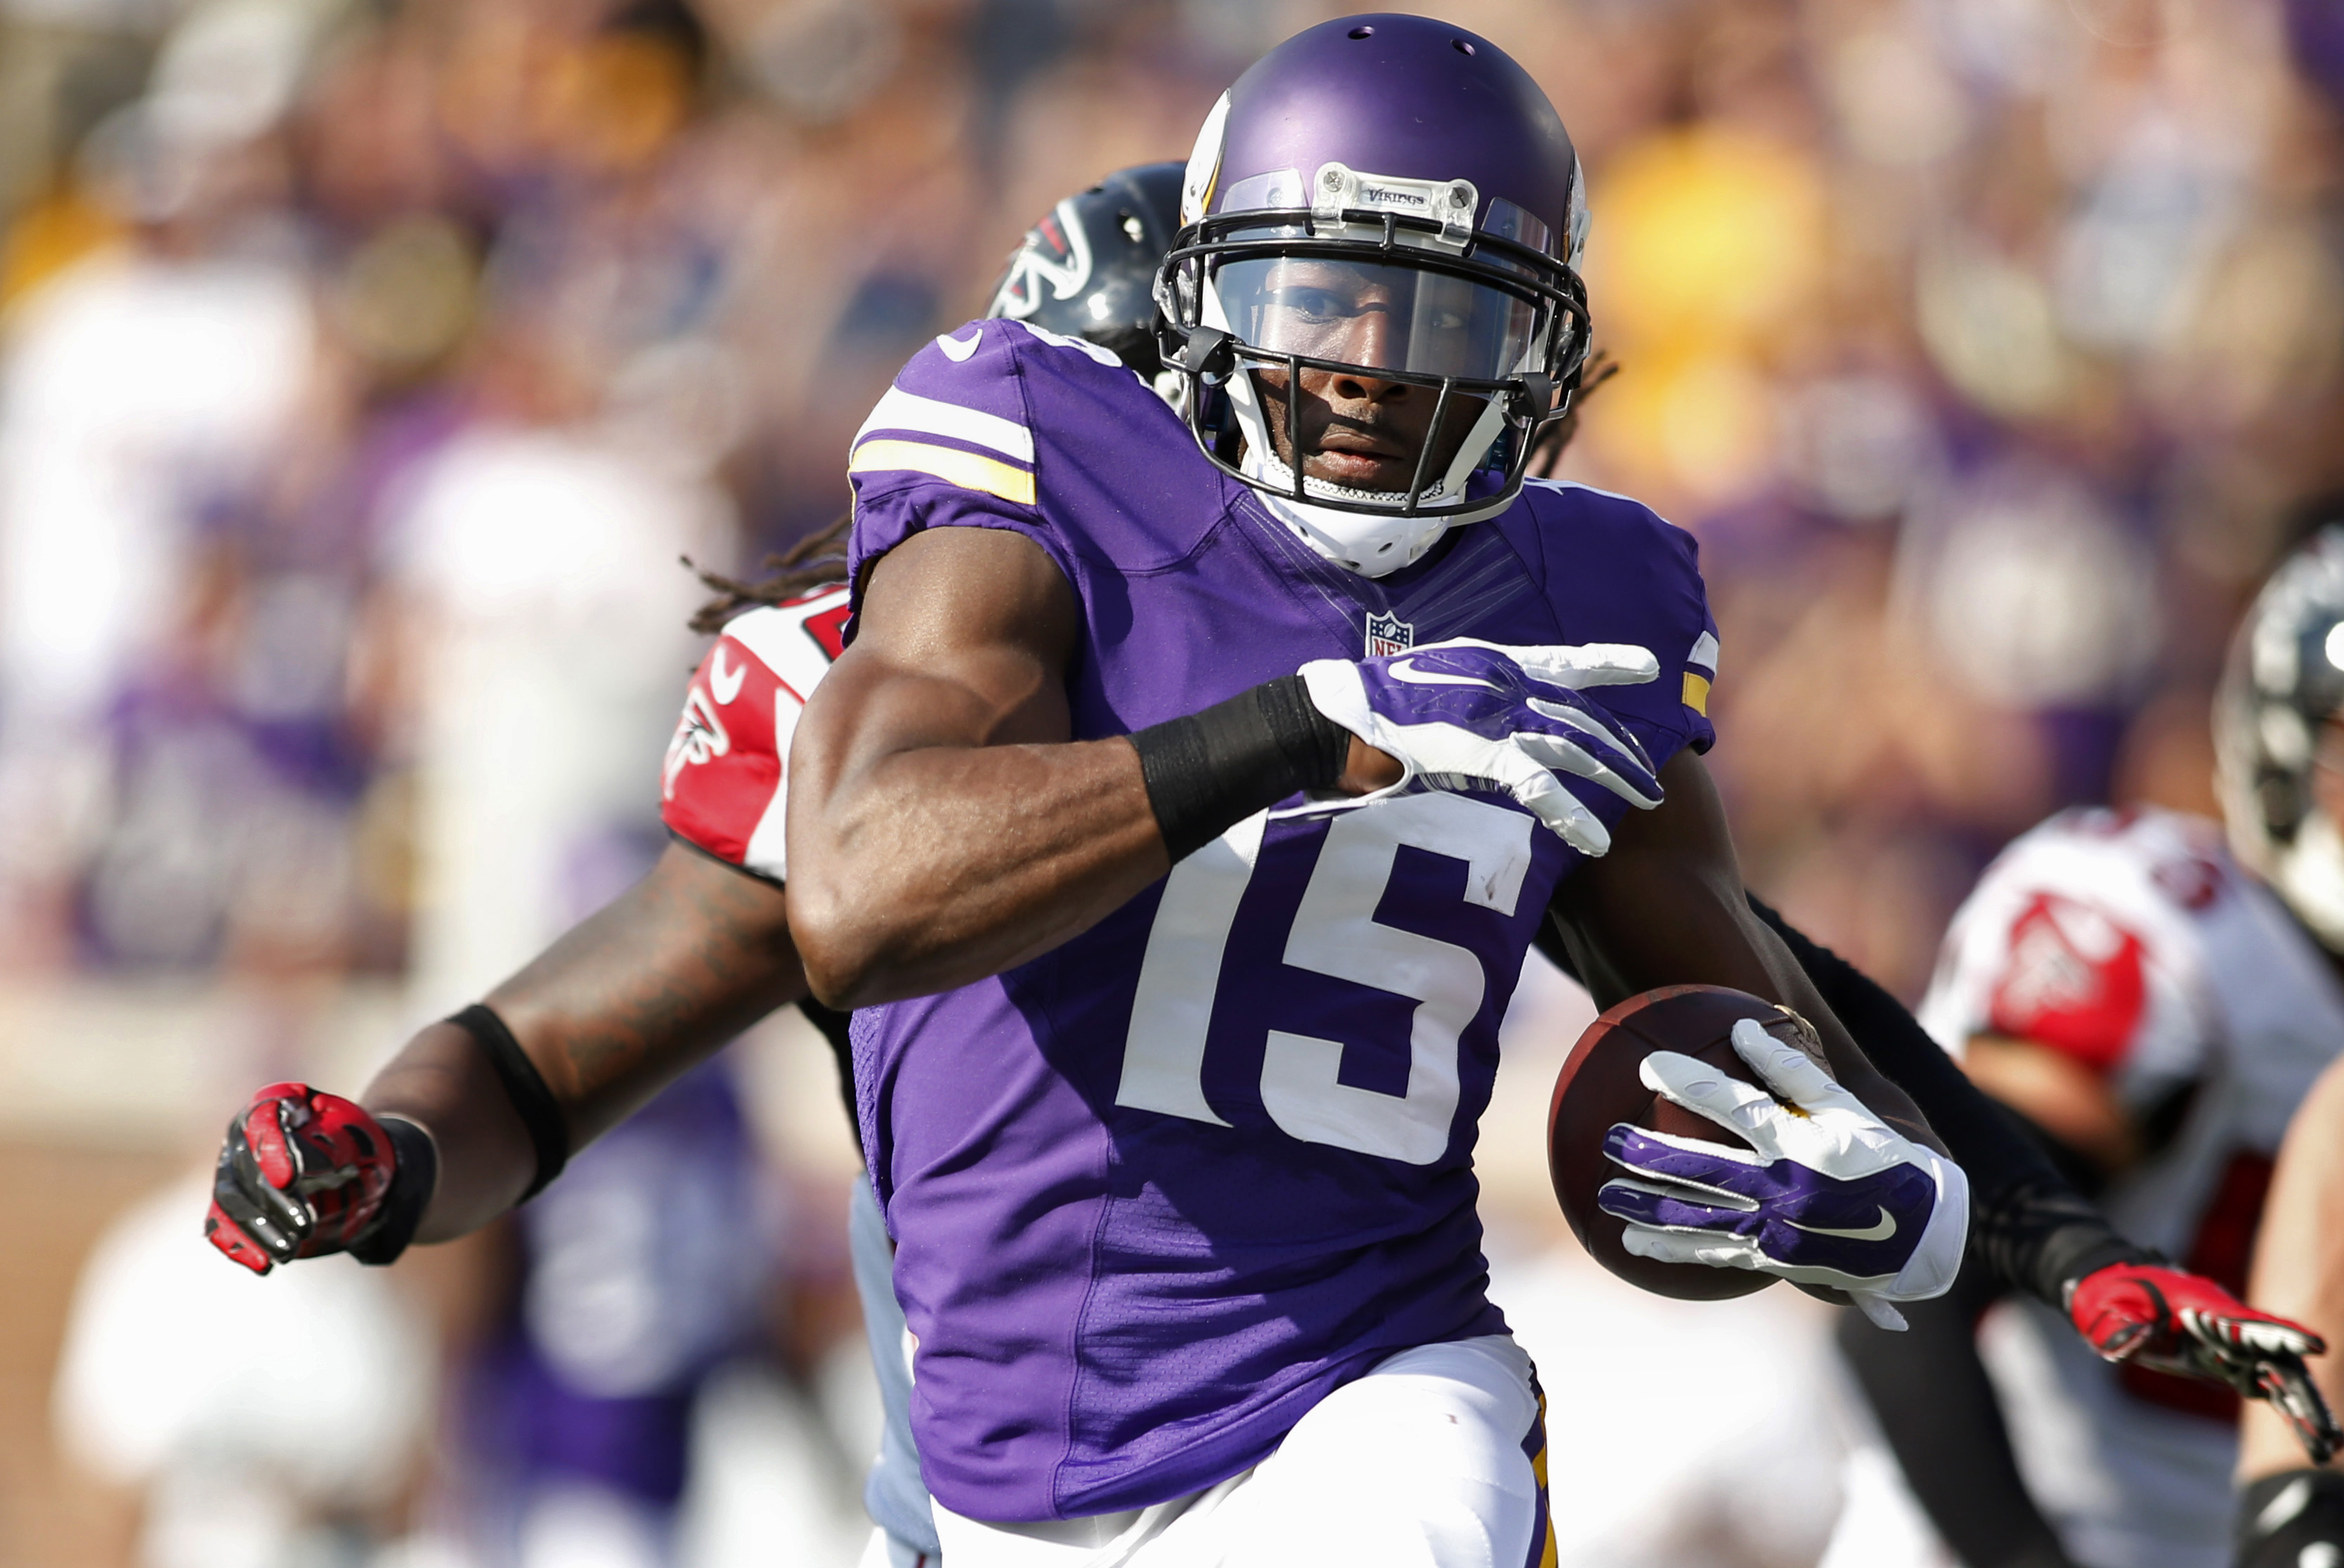 Sep 28, 2014; Minneapolis, MN, USA; Minnesota Vikings wide receiver Greg Jennings (15) catches a pass for 29 yards against the Atlanta Falcons in the first quarter at TCF Bank Stadium. Mandatory Credit: Bruce Kluckhohn-USA TODAY Sports ORG XMIT: USATSI-180116 ORIG FILE ID: 20140928_gma_sk1_068.jpg